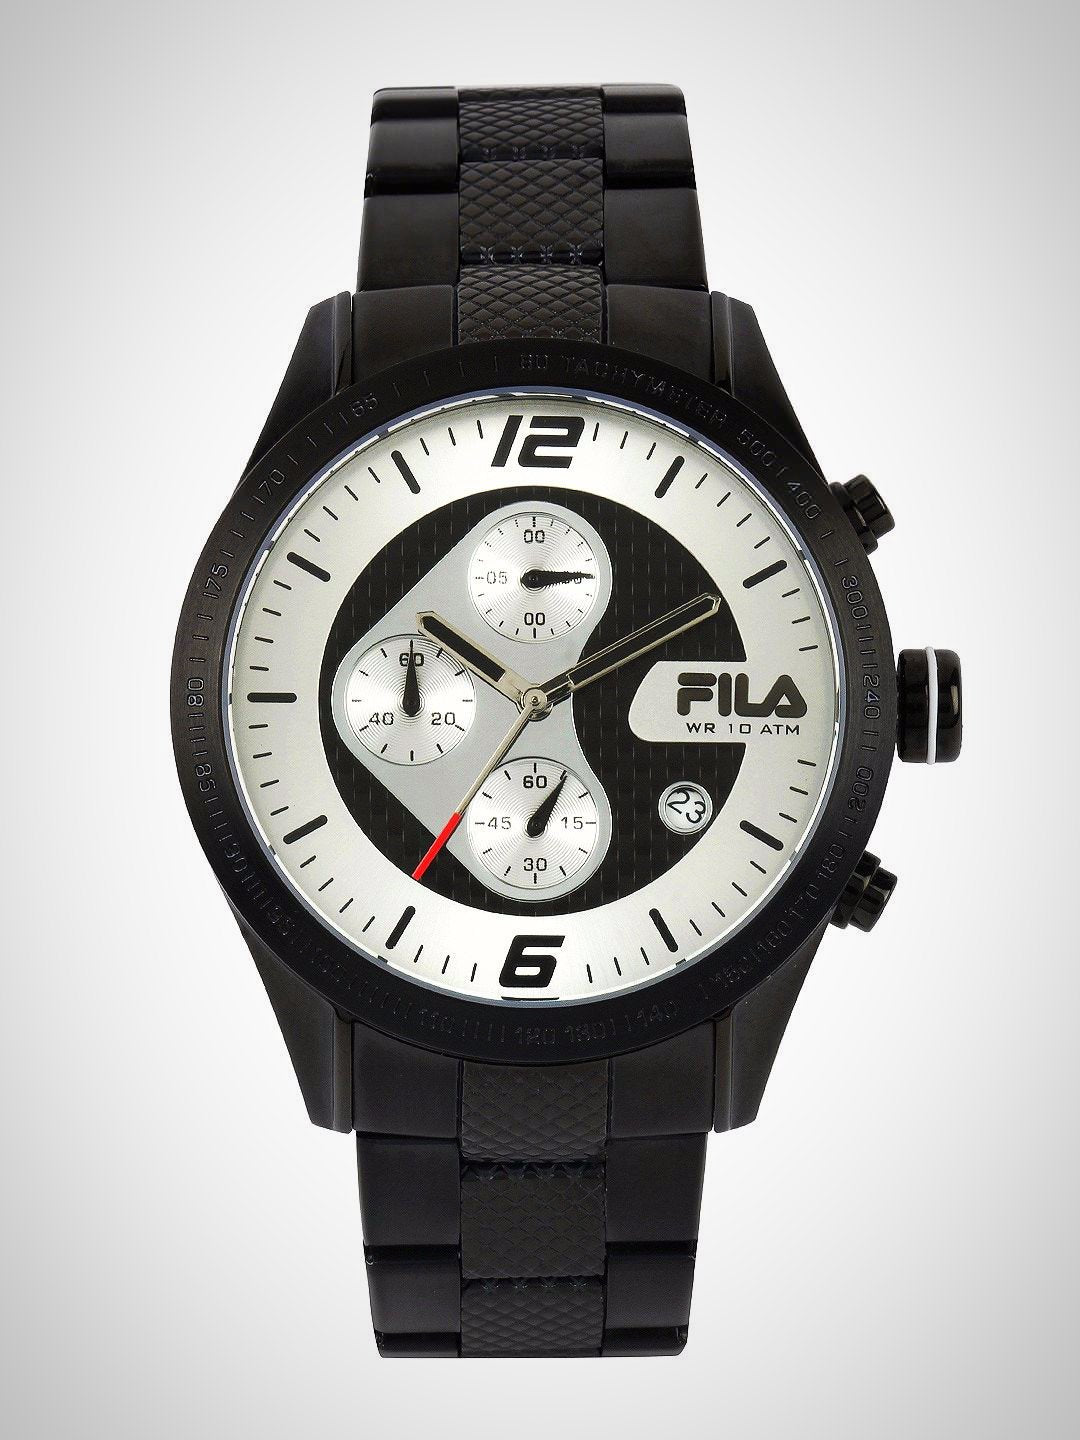 Fila 38-001-003 Men's Black Chronograph Silver Dial Stainless Steel Quartz Watch